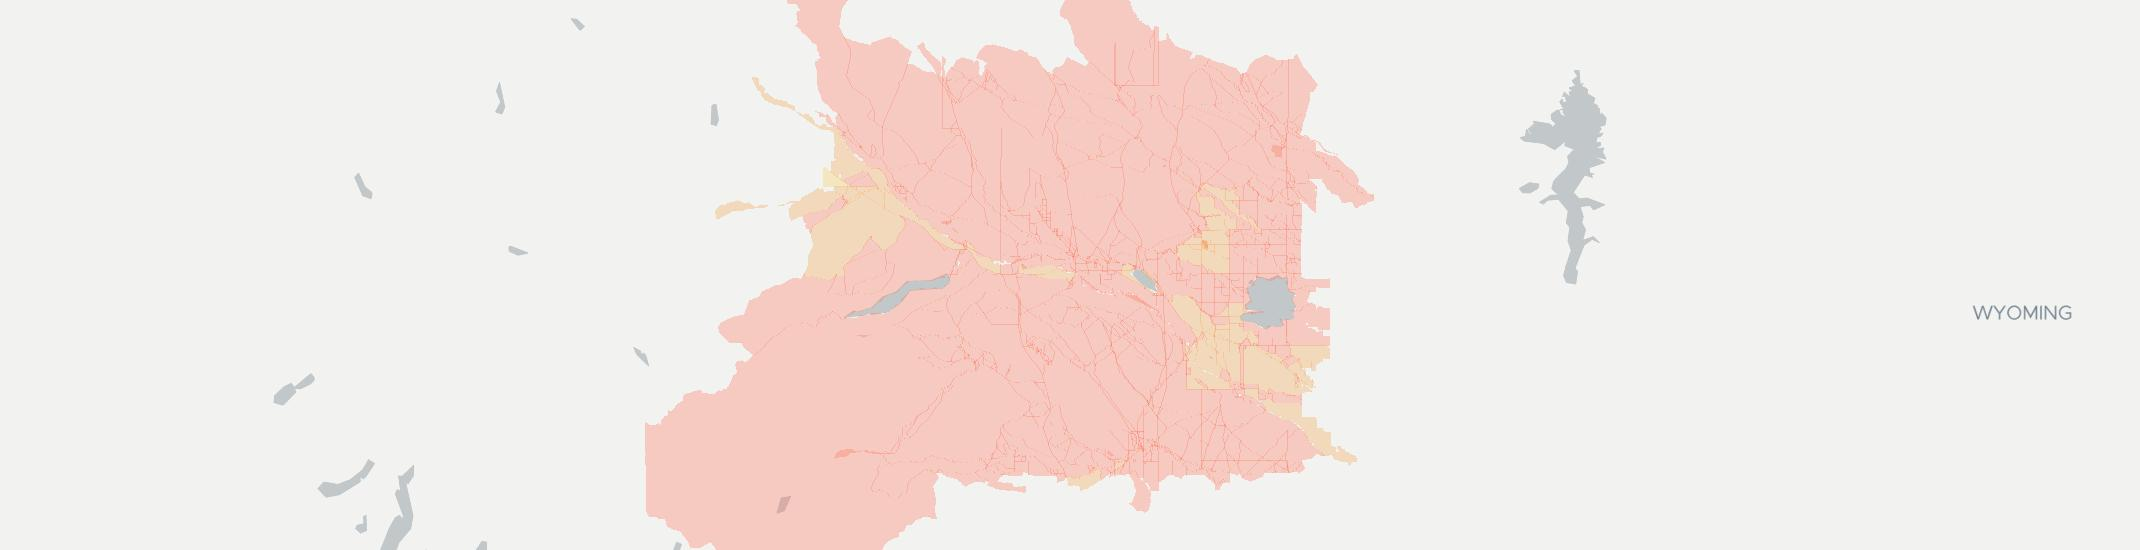 Kinnear Internet Competition Map. Click for interactive map.